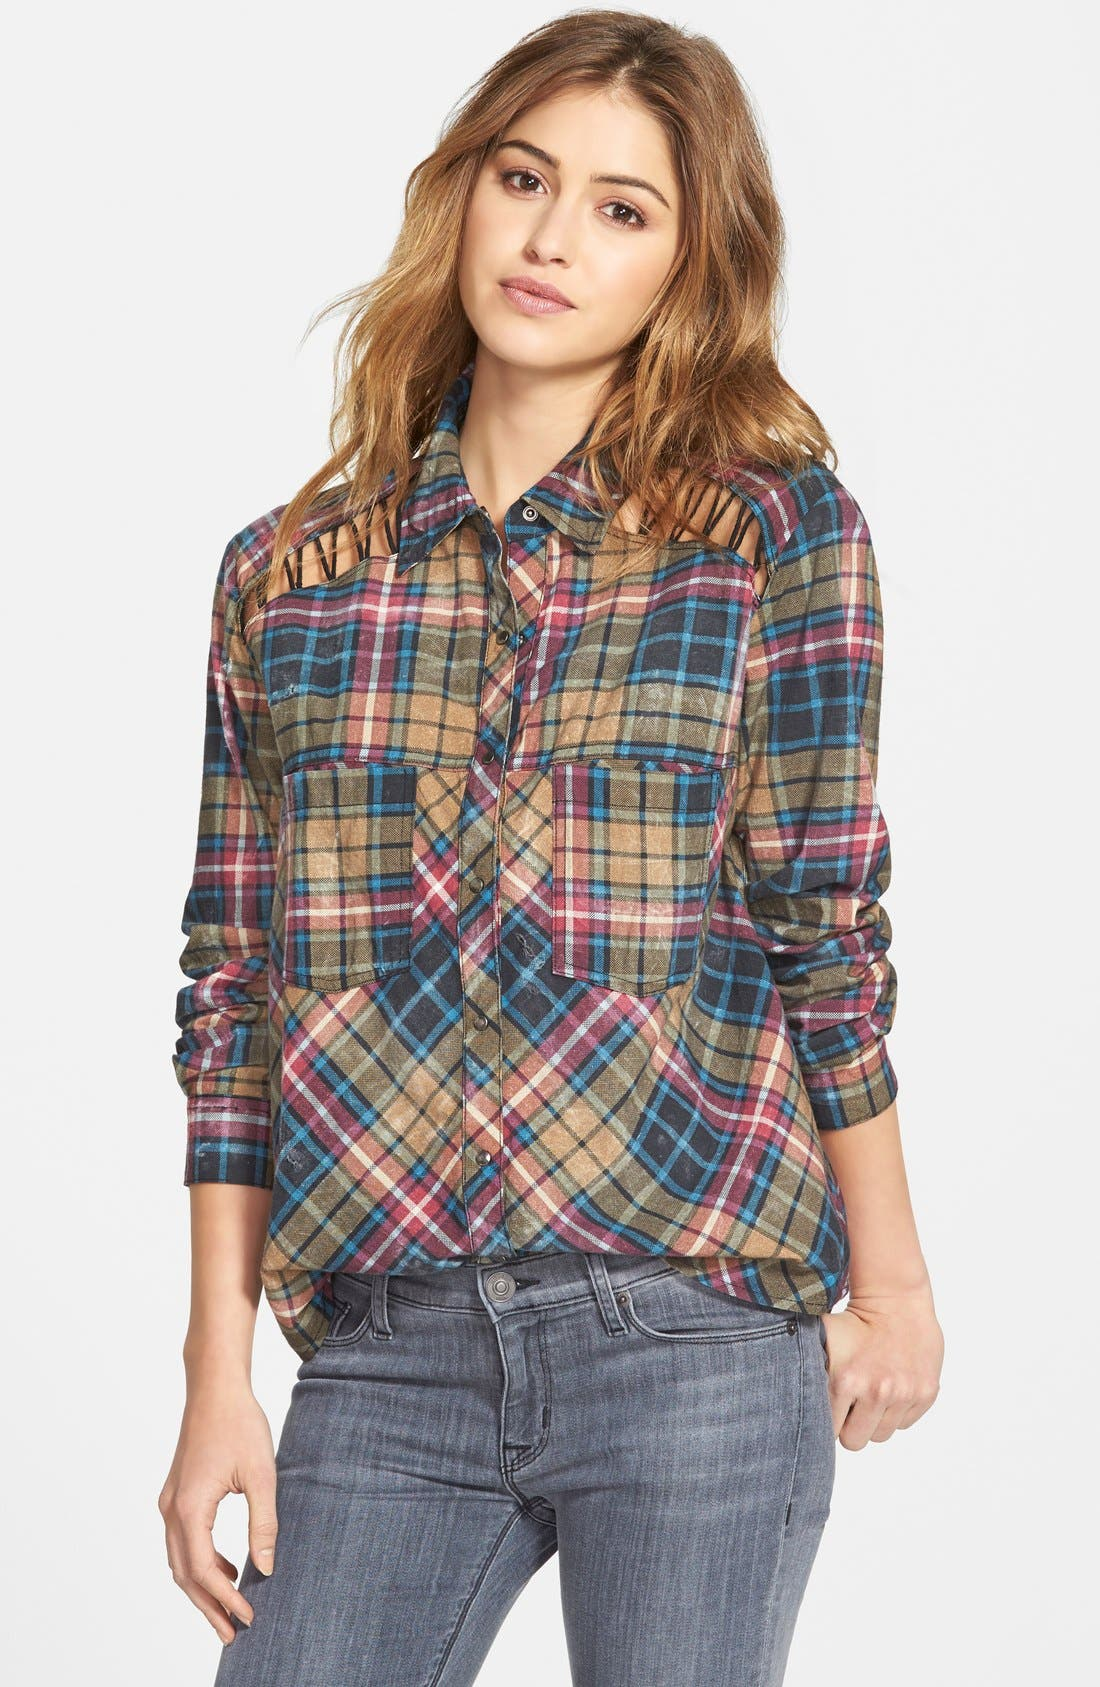 Alternate Image 1 Selected - Free People Stitch Detail Plaid Shirt (Nordstrom Exclusive)